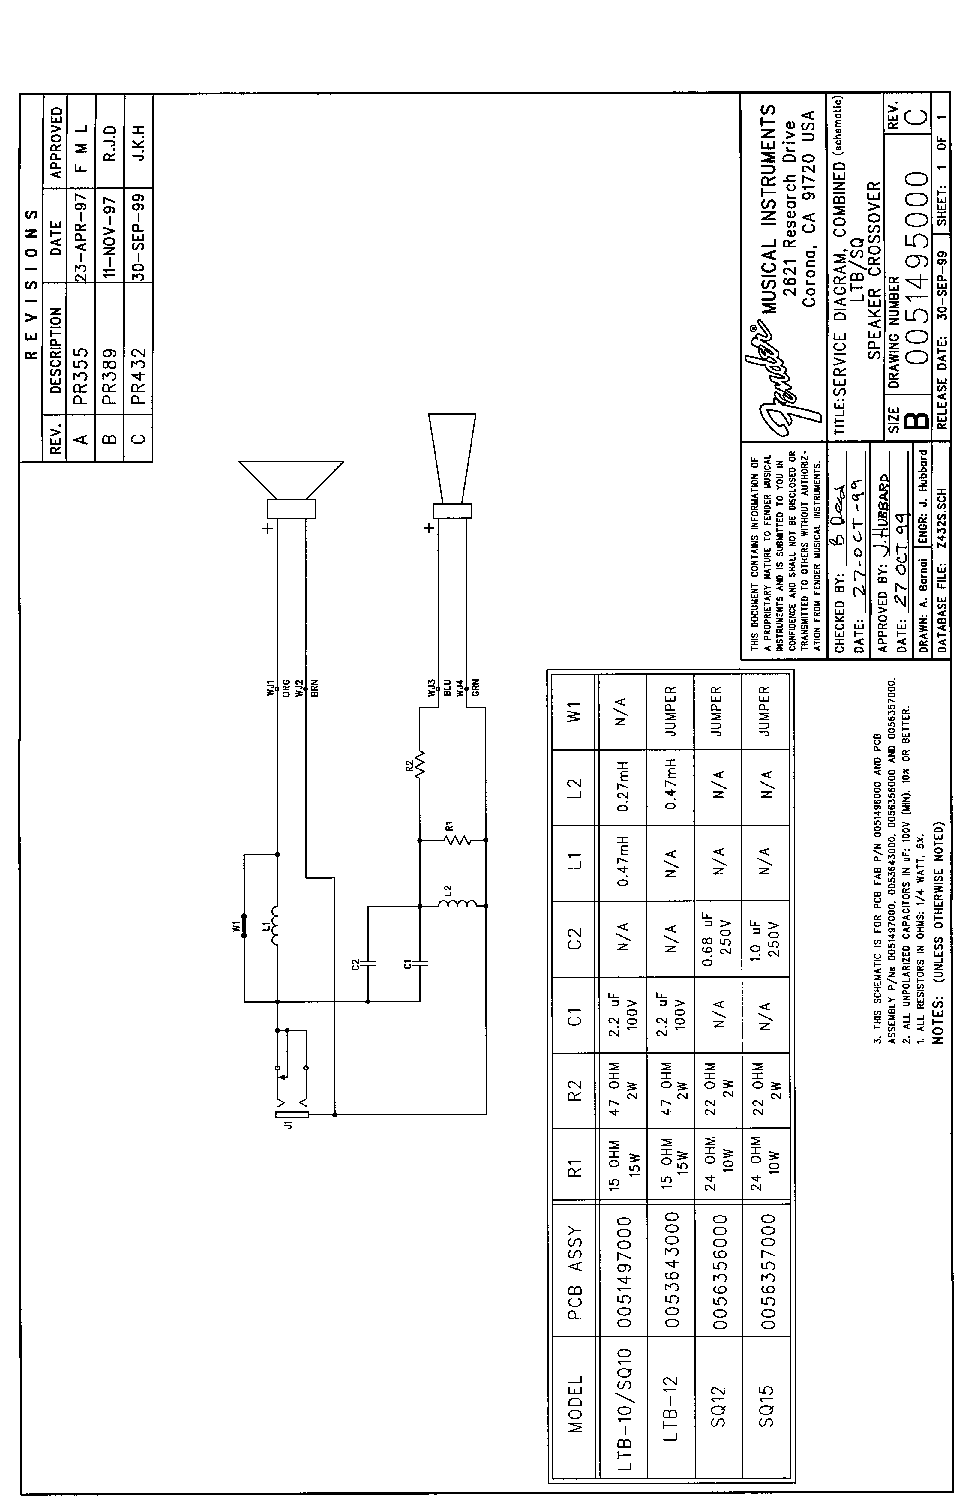 fender speaker crossover sch service manual download  schematics  eeprom  repair info for